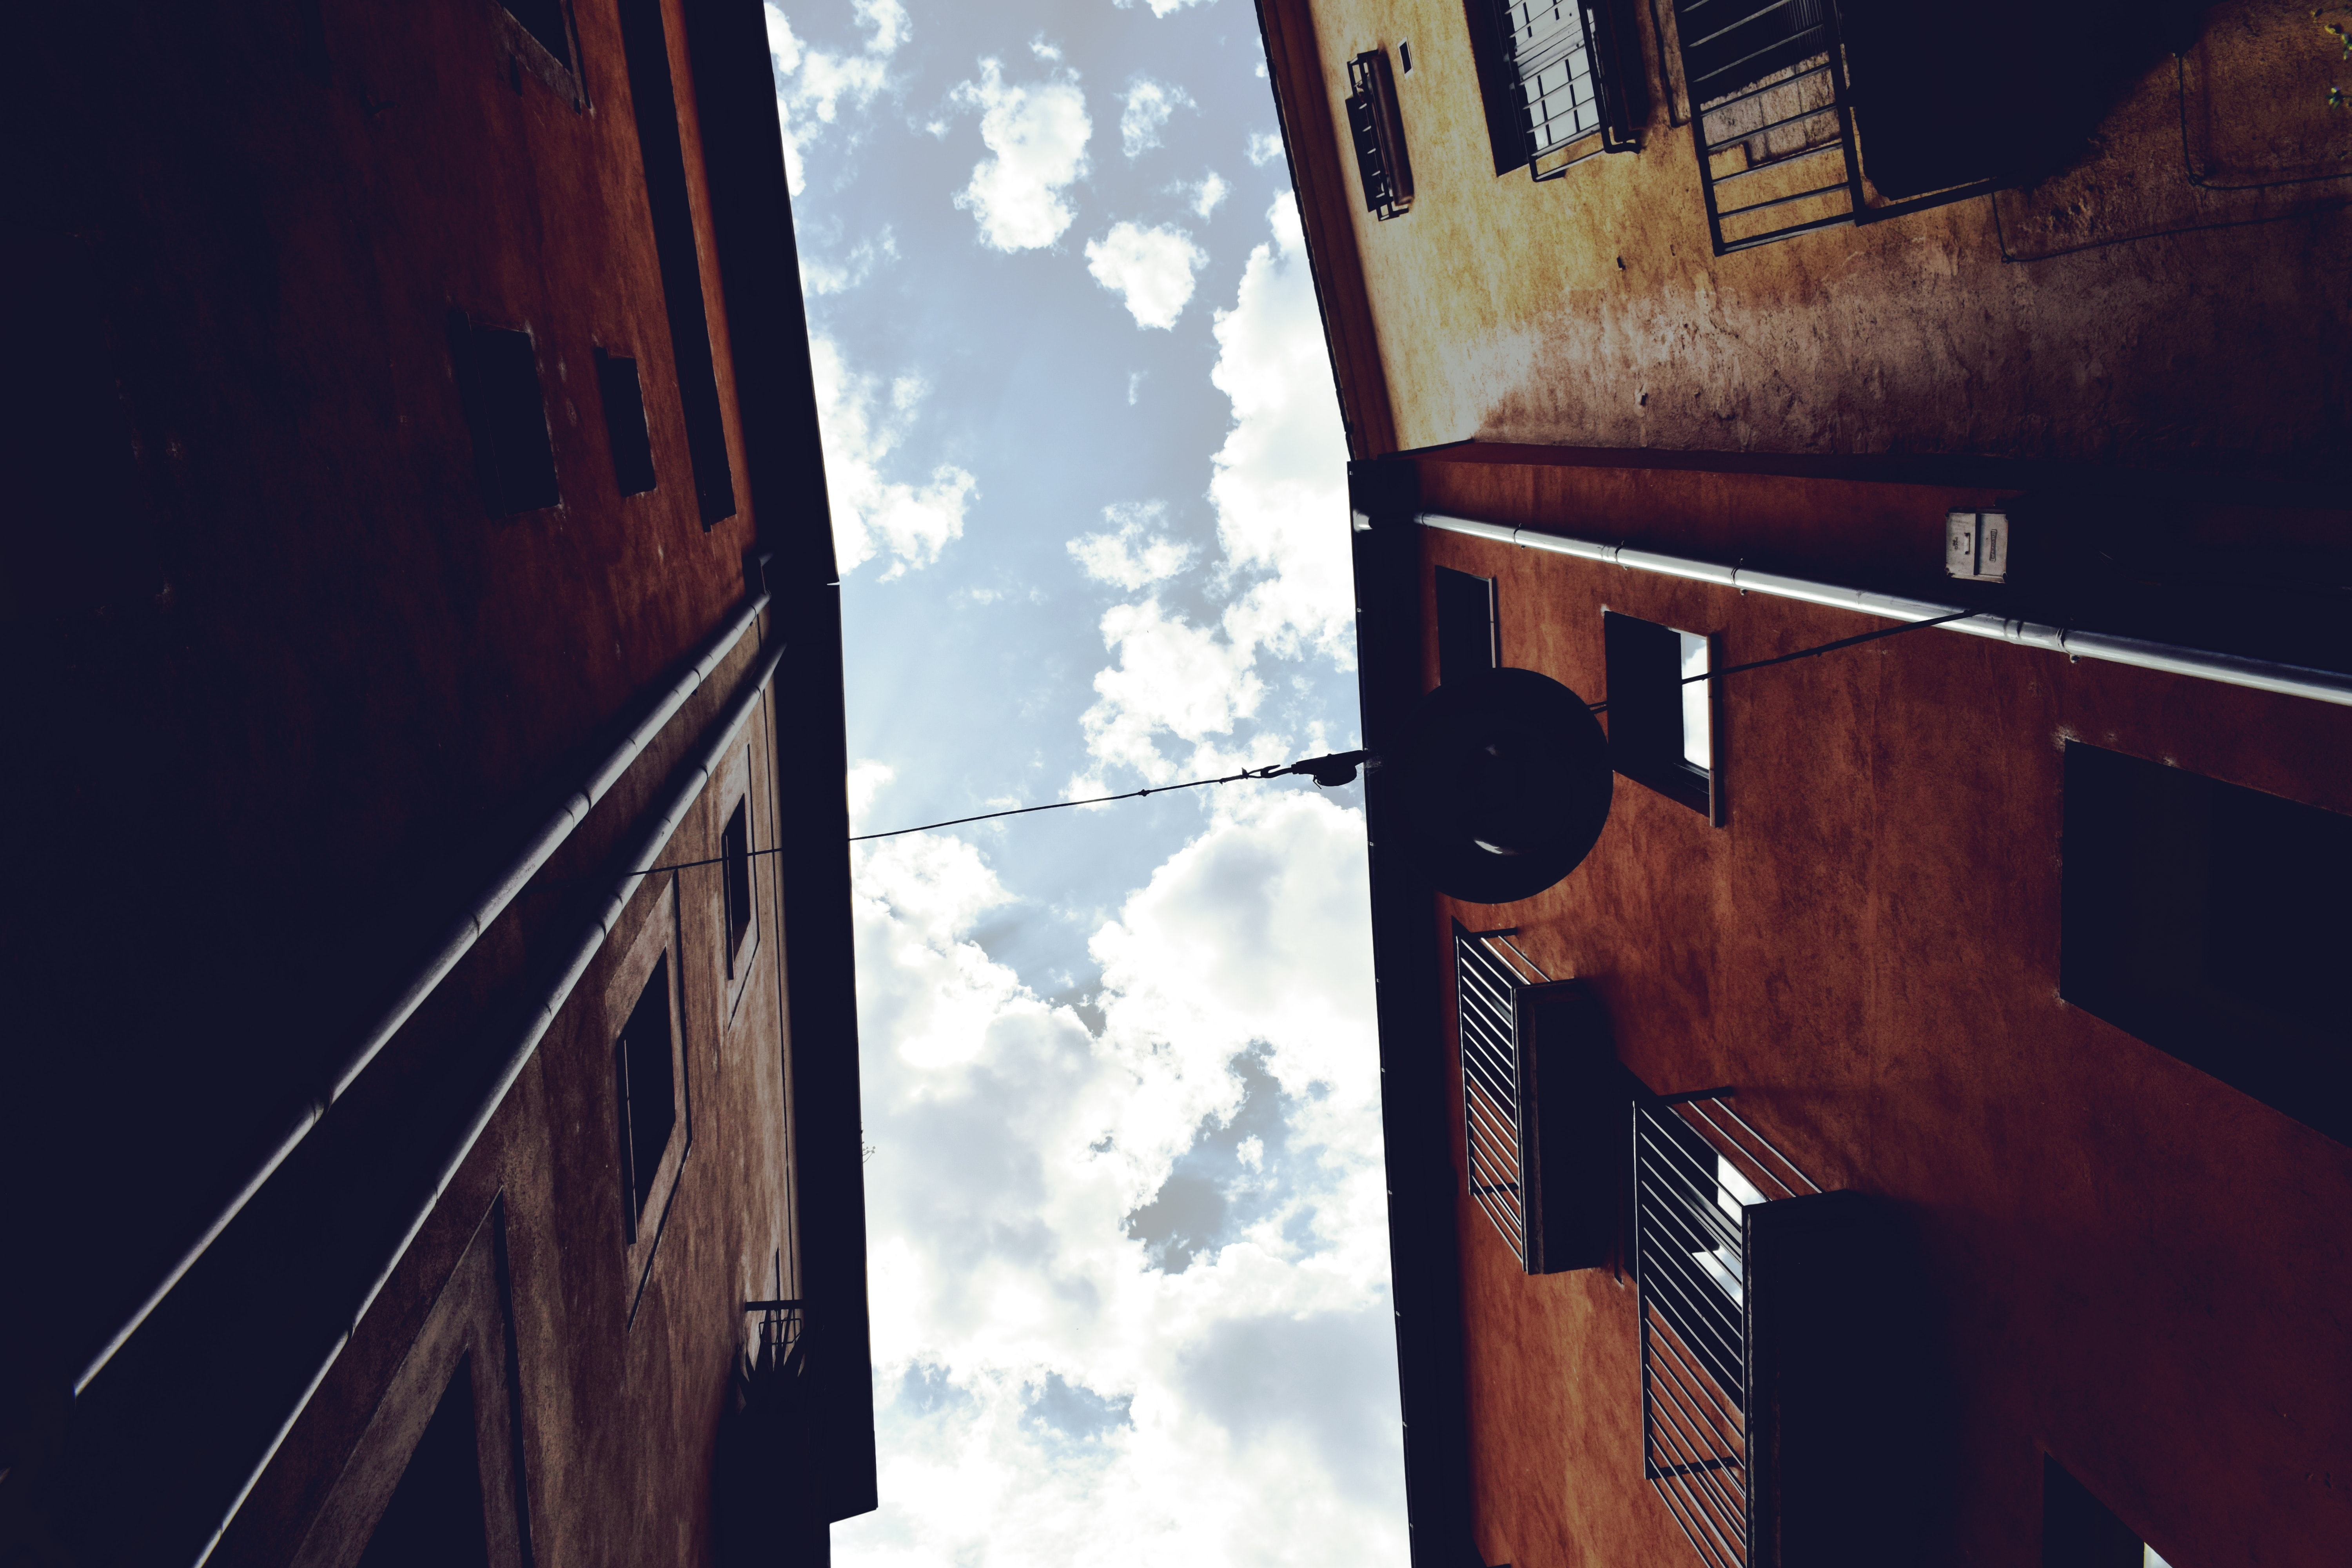 Worm's Eyeview Photography of Brown Concrete Building and White Clouds, Alley, Light, Urban, Travel, HQ Photo